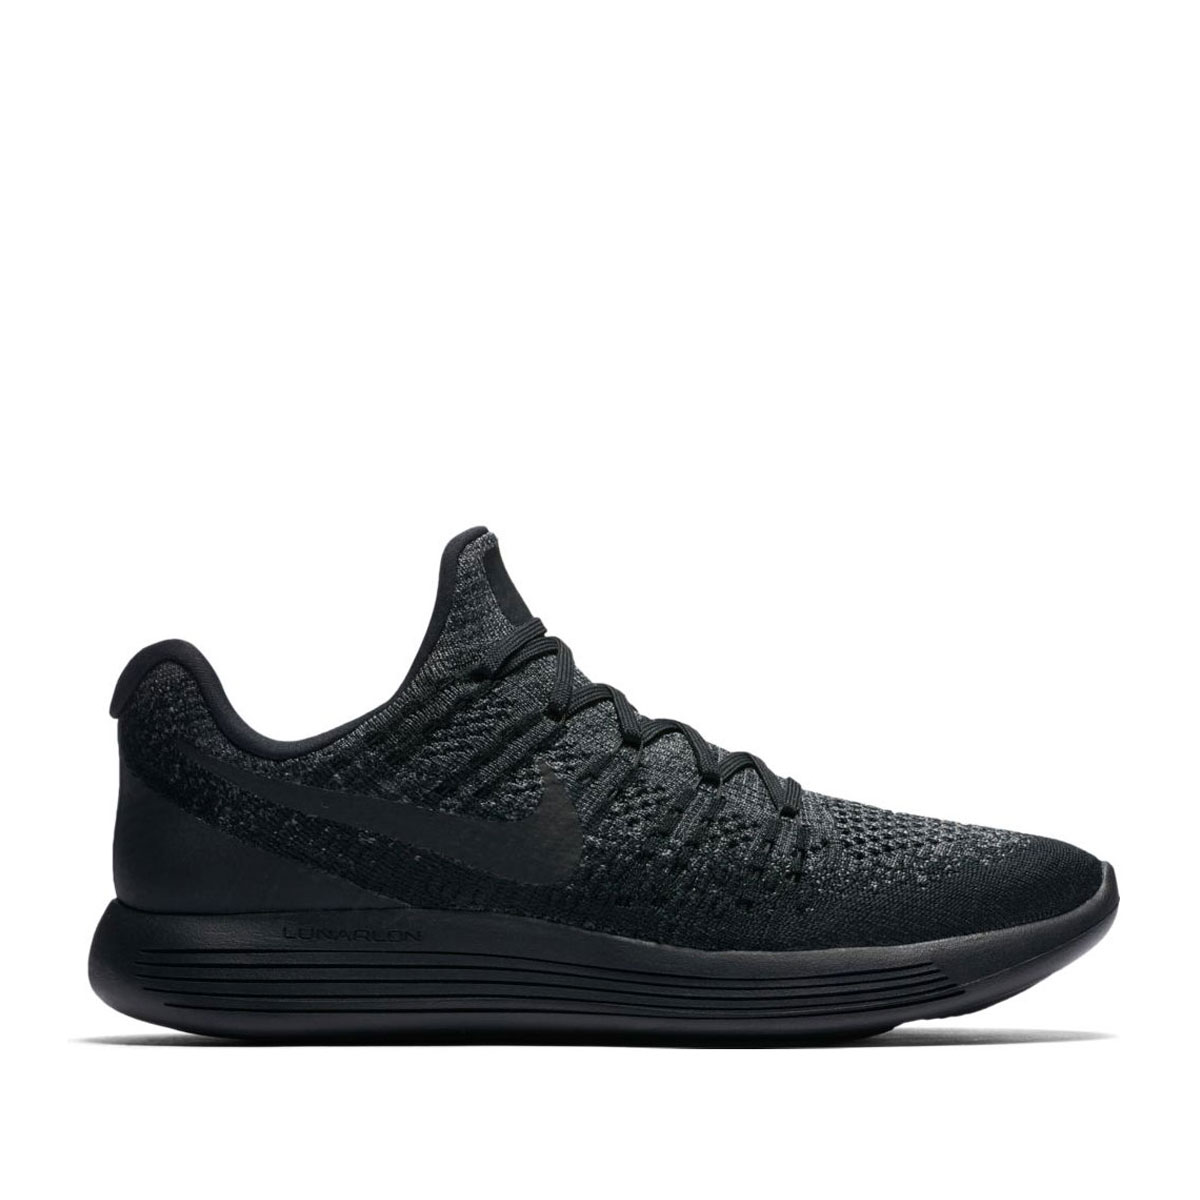 buy online 056f8 cf7a1 NIKE LUNAREPIC LOW FLYKNIT 2 (Nike luna epic loaf rye knit 2) BLACK  ...